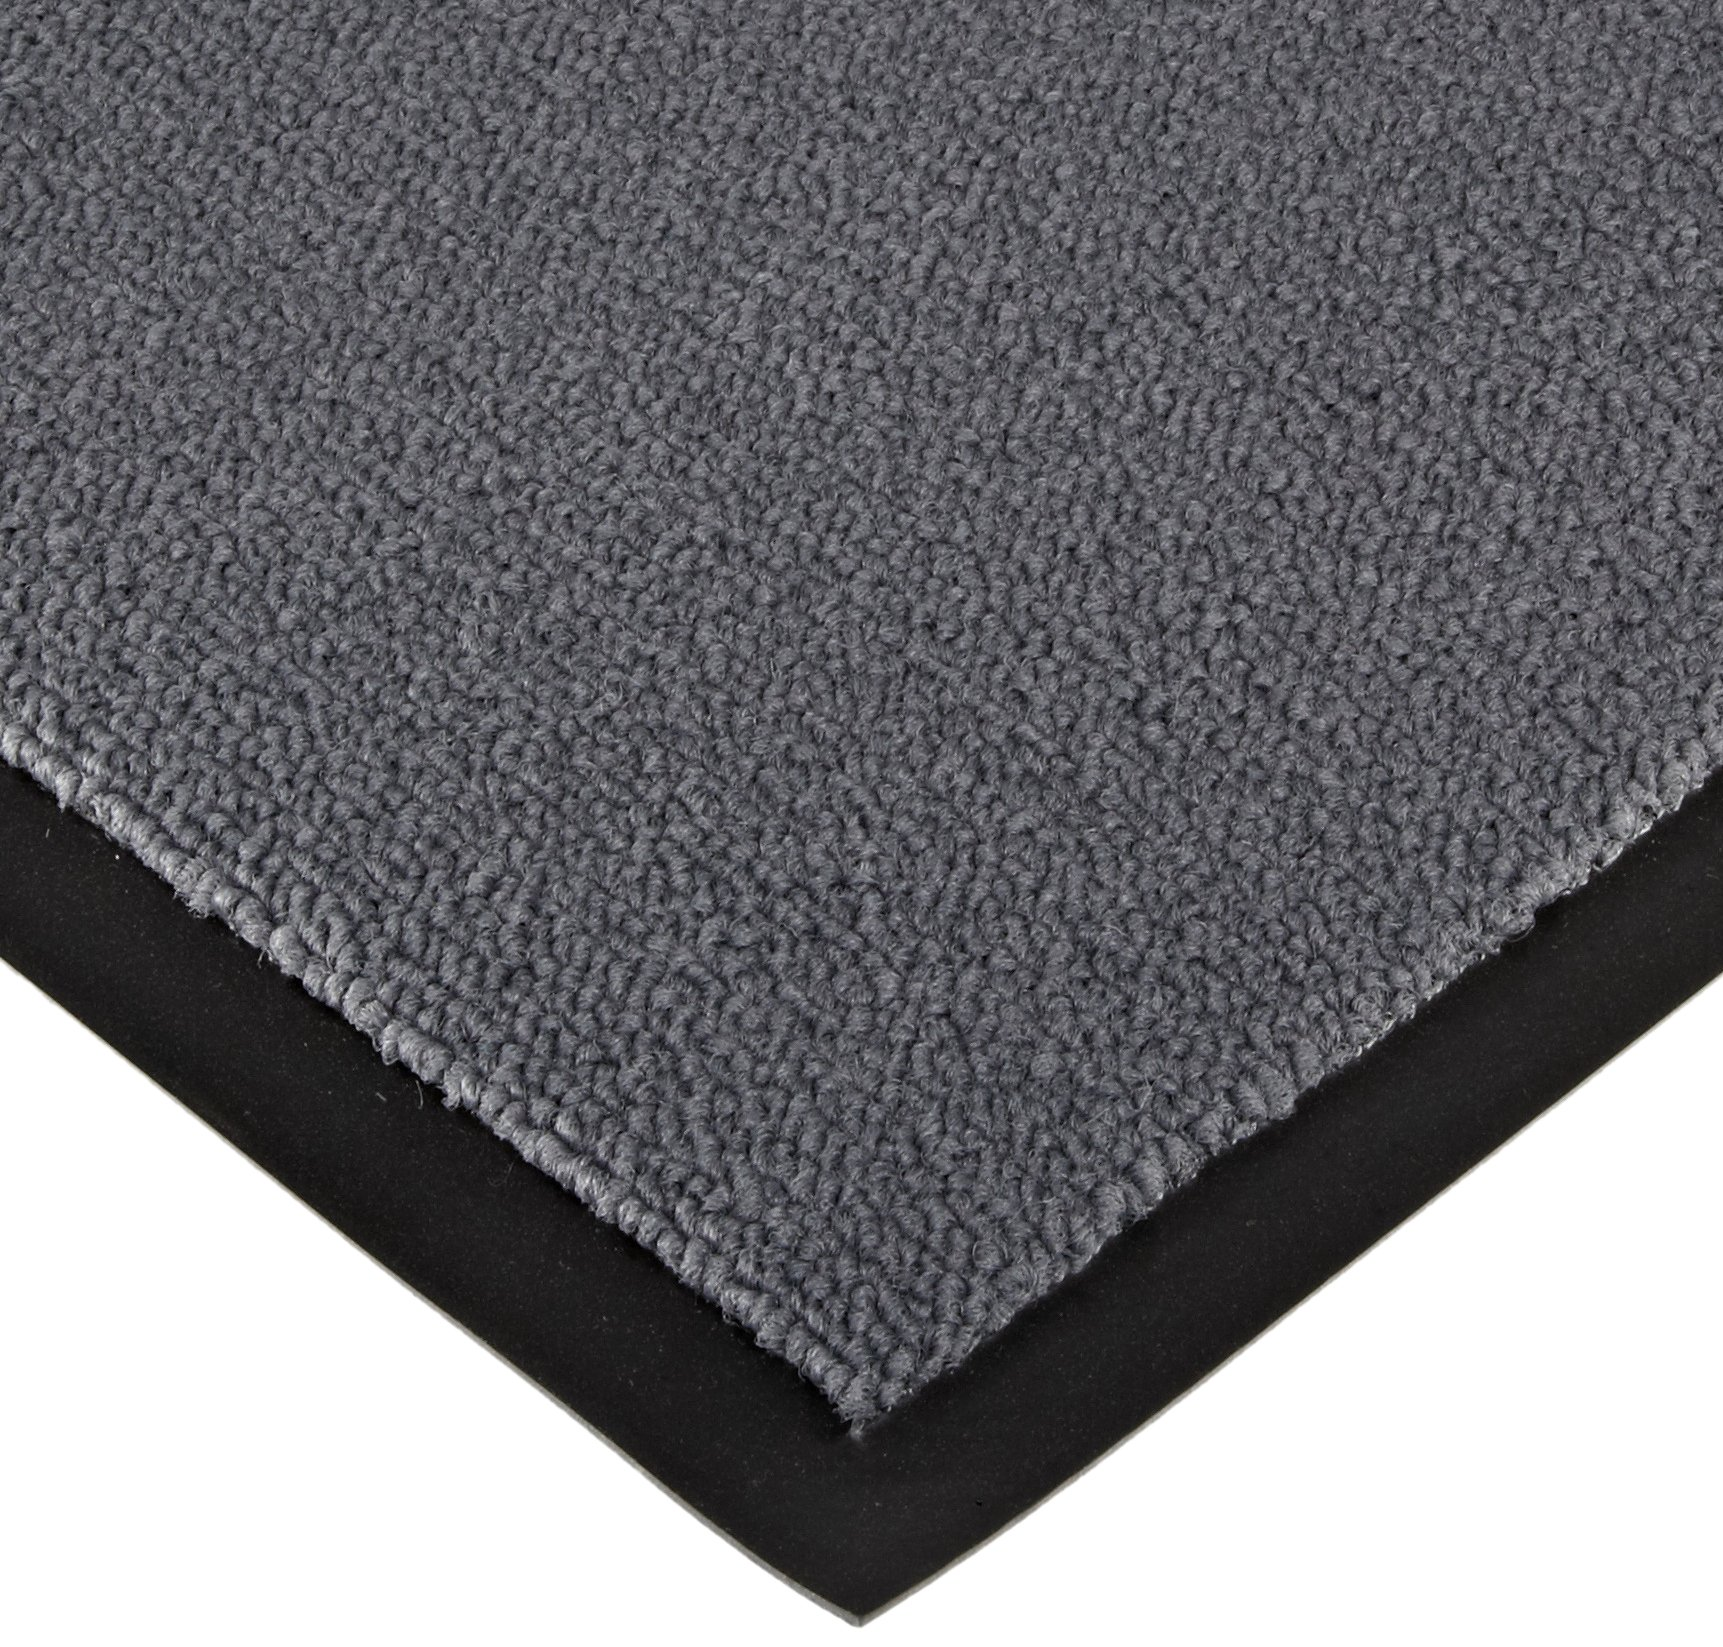 Notrax 141 Ovation Entrance Mat, for Main Entranceways and Heavy Traffic Areas, 4' Width x 6' Length x 5/16'' Thickness, Gray